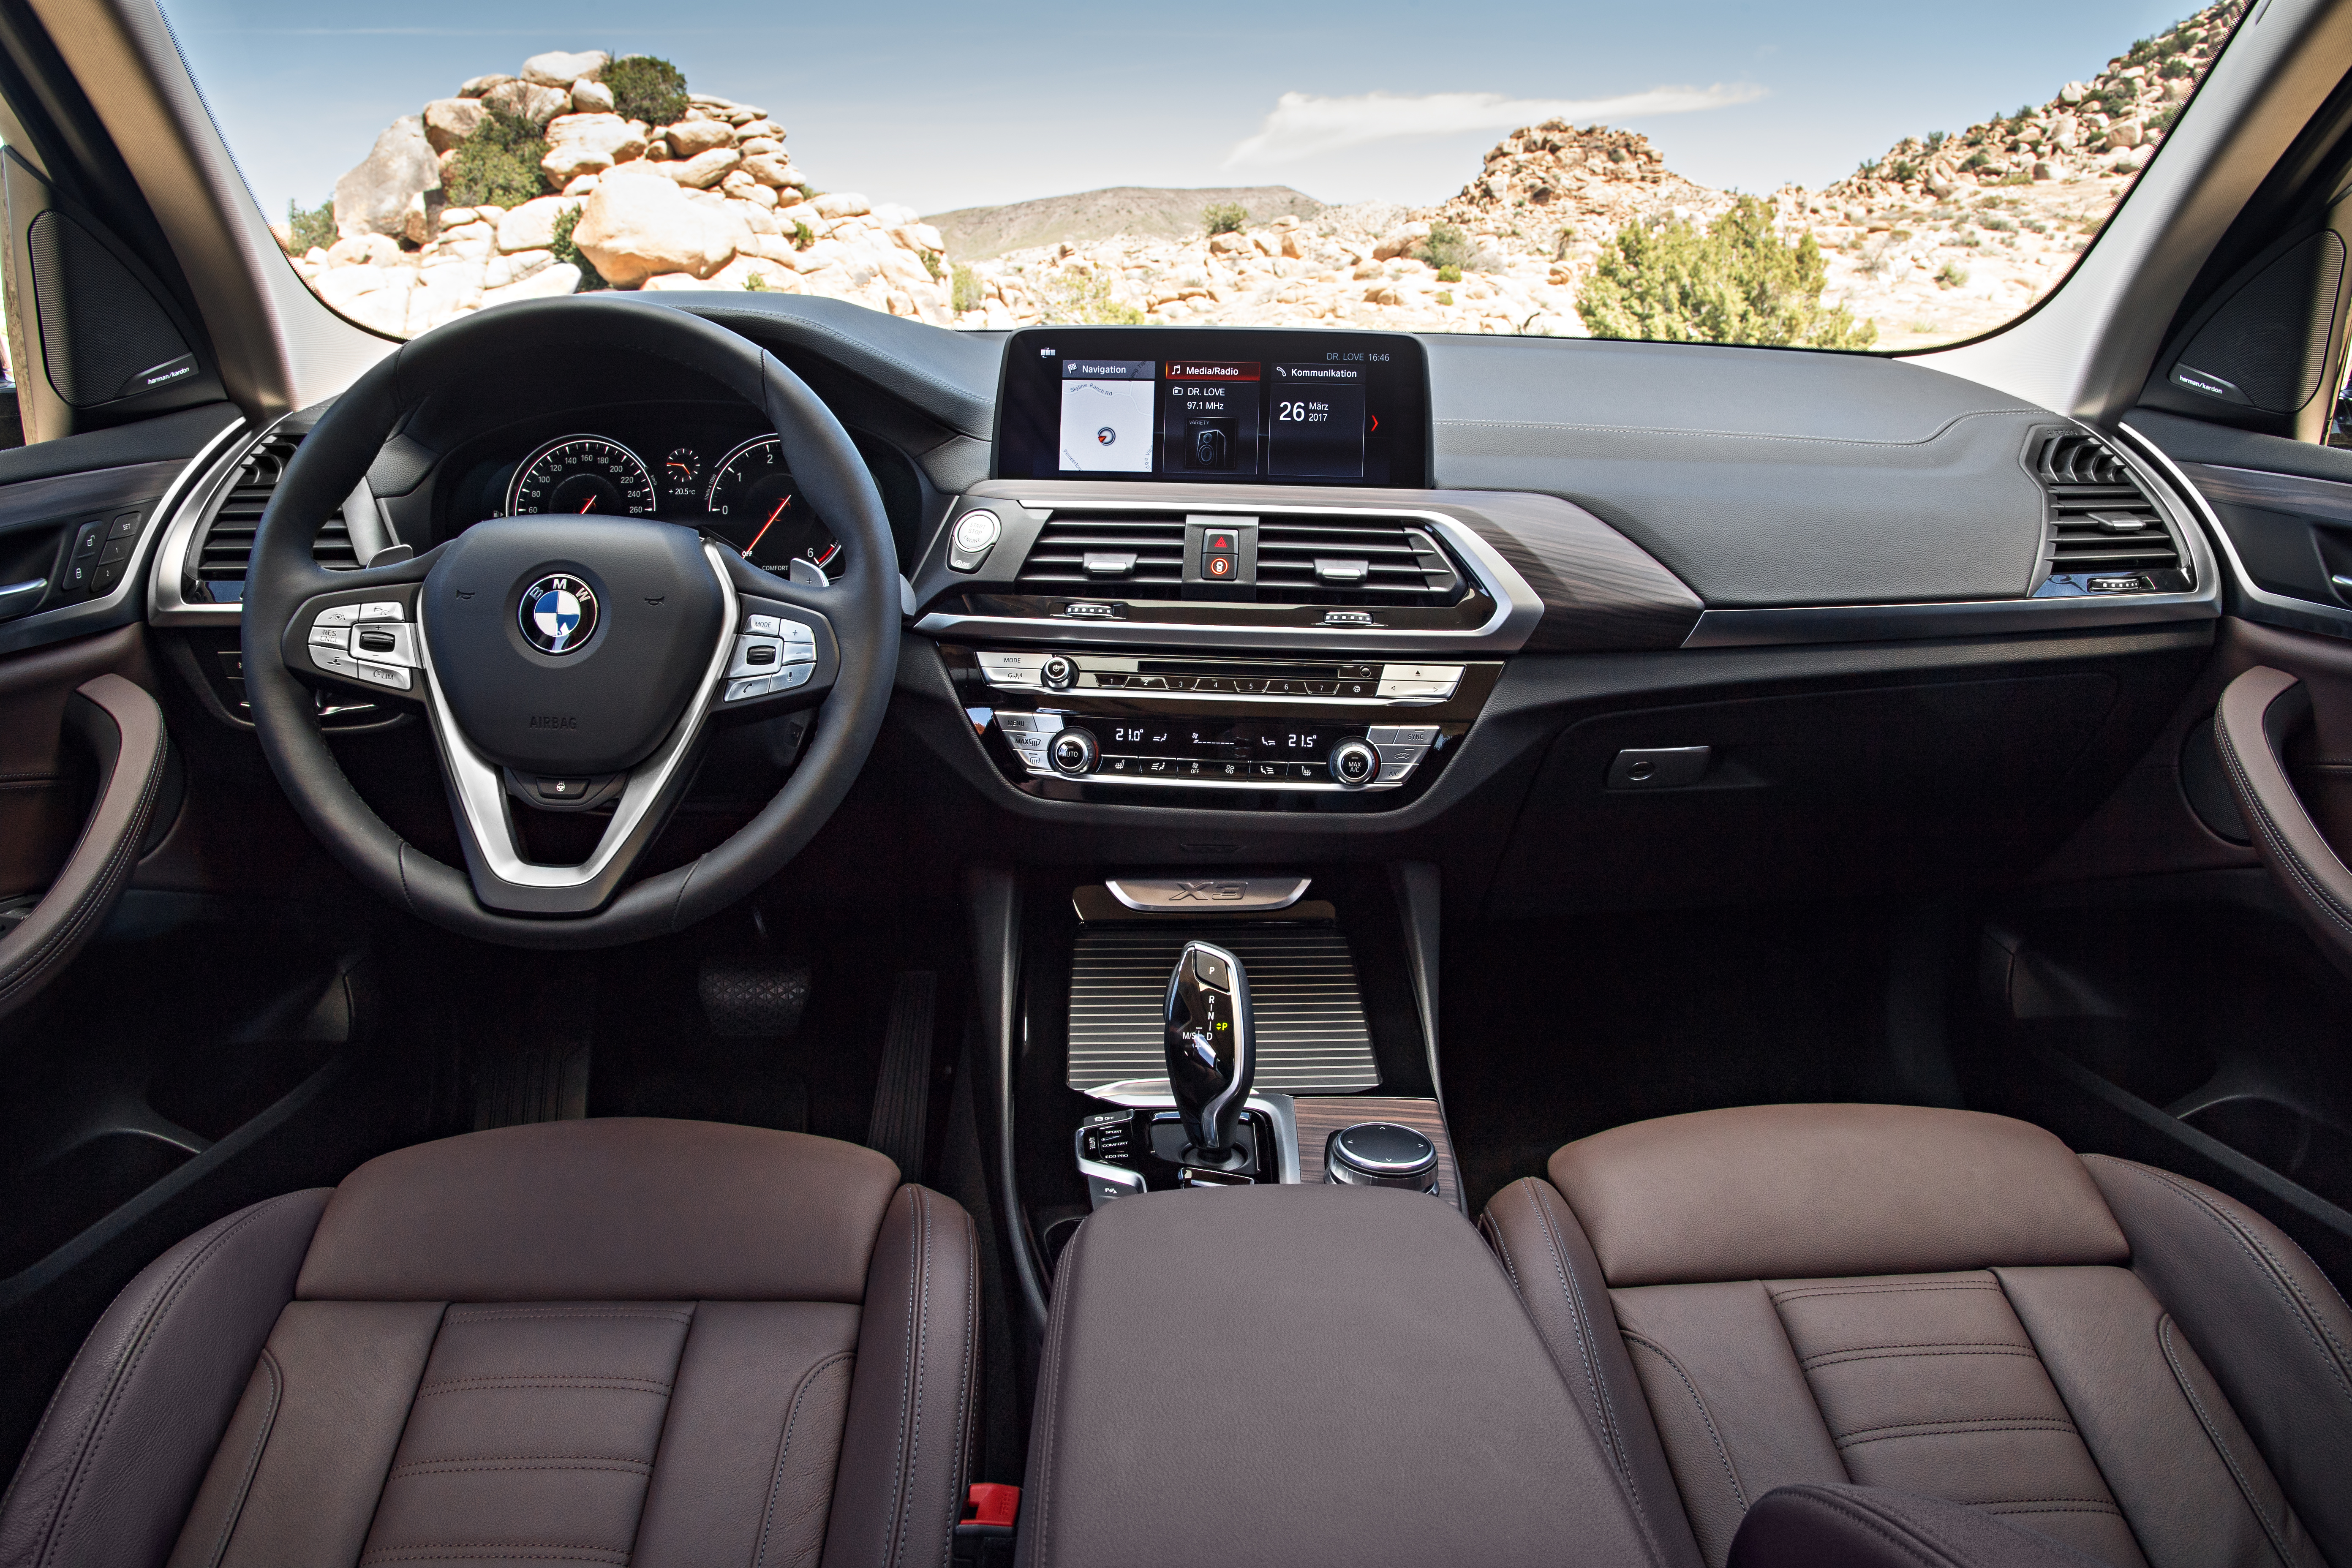 BMW didn't miss with its interior improvements – the classic look and divine materials remain, while the infotainment interface just keeps getting better.